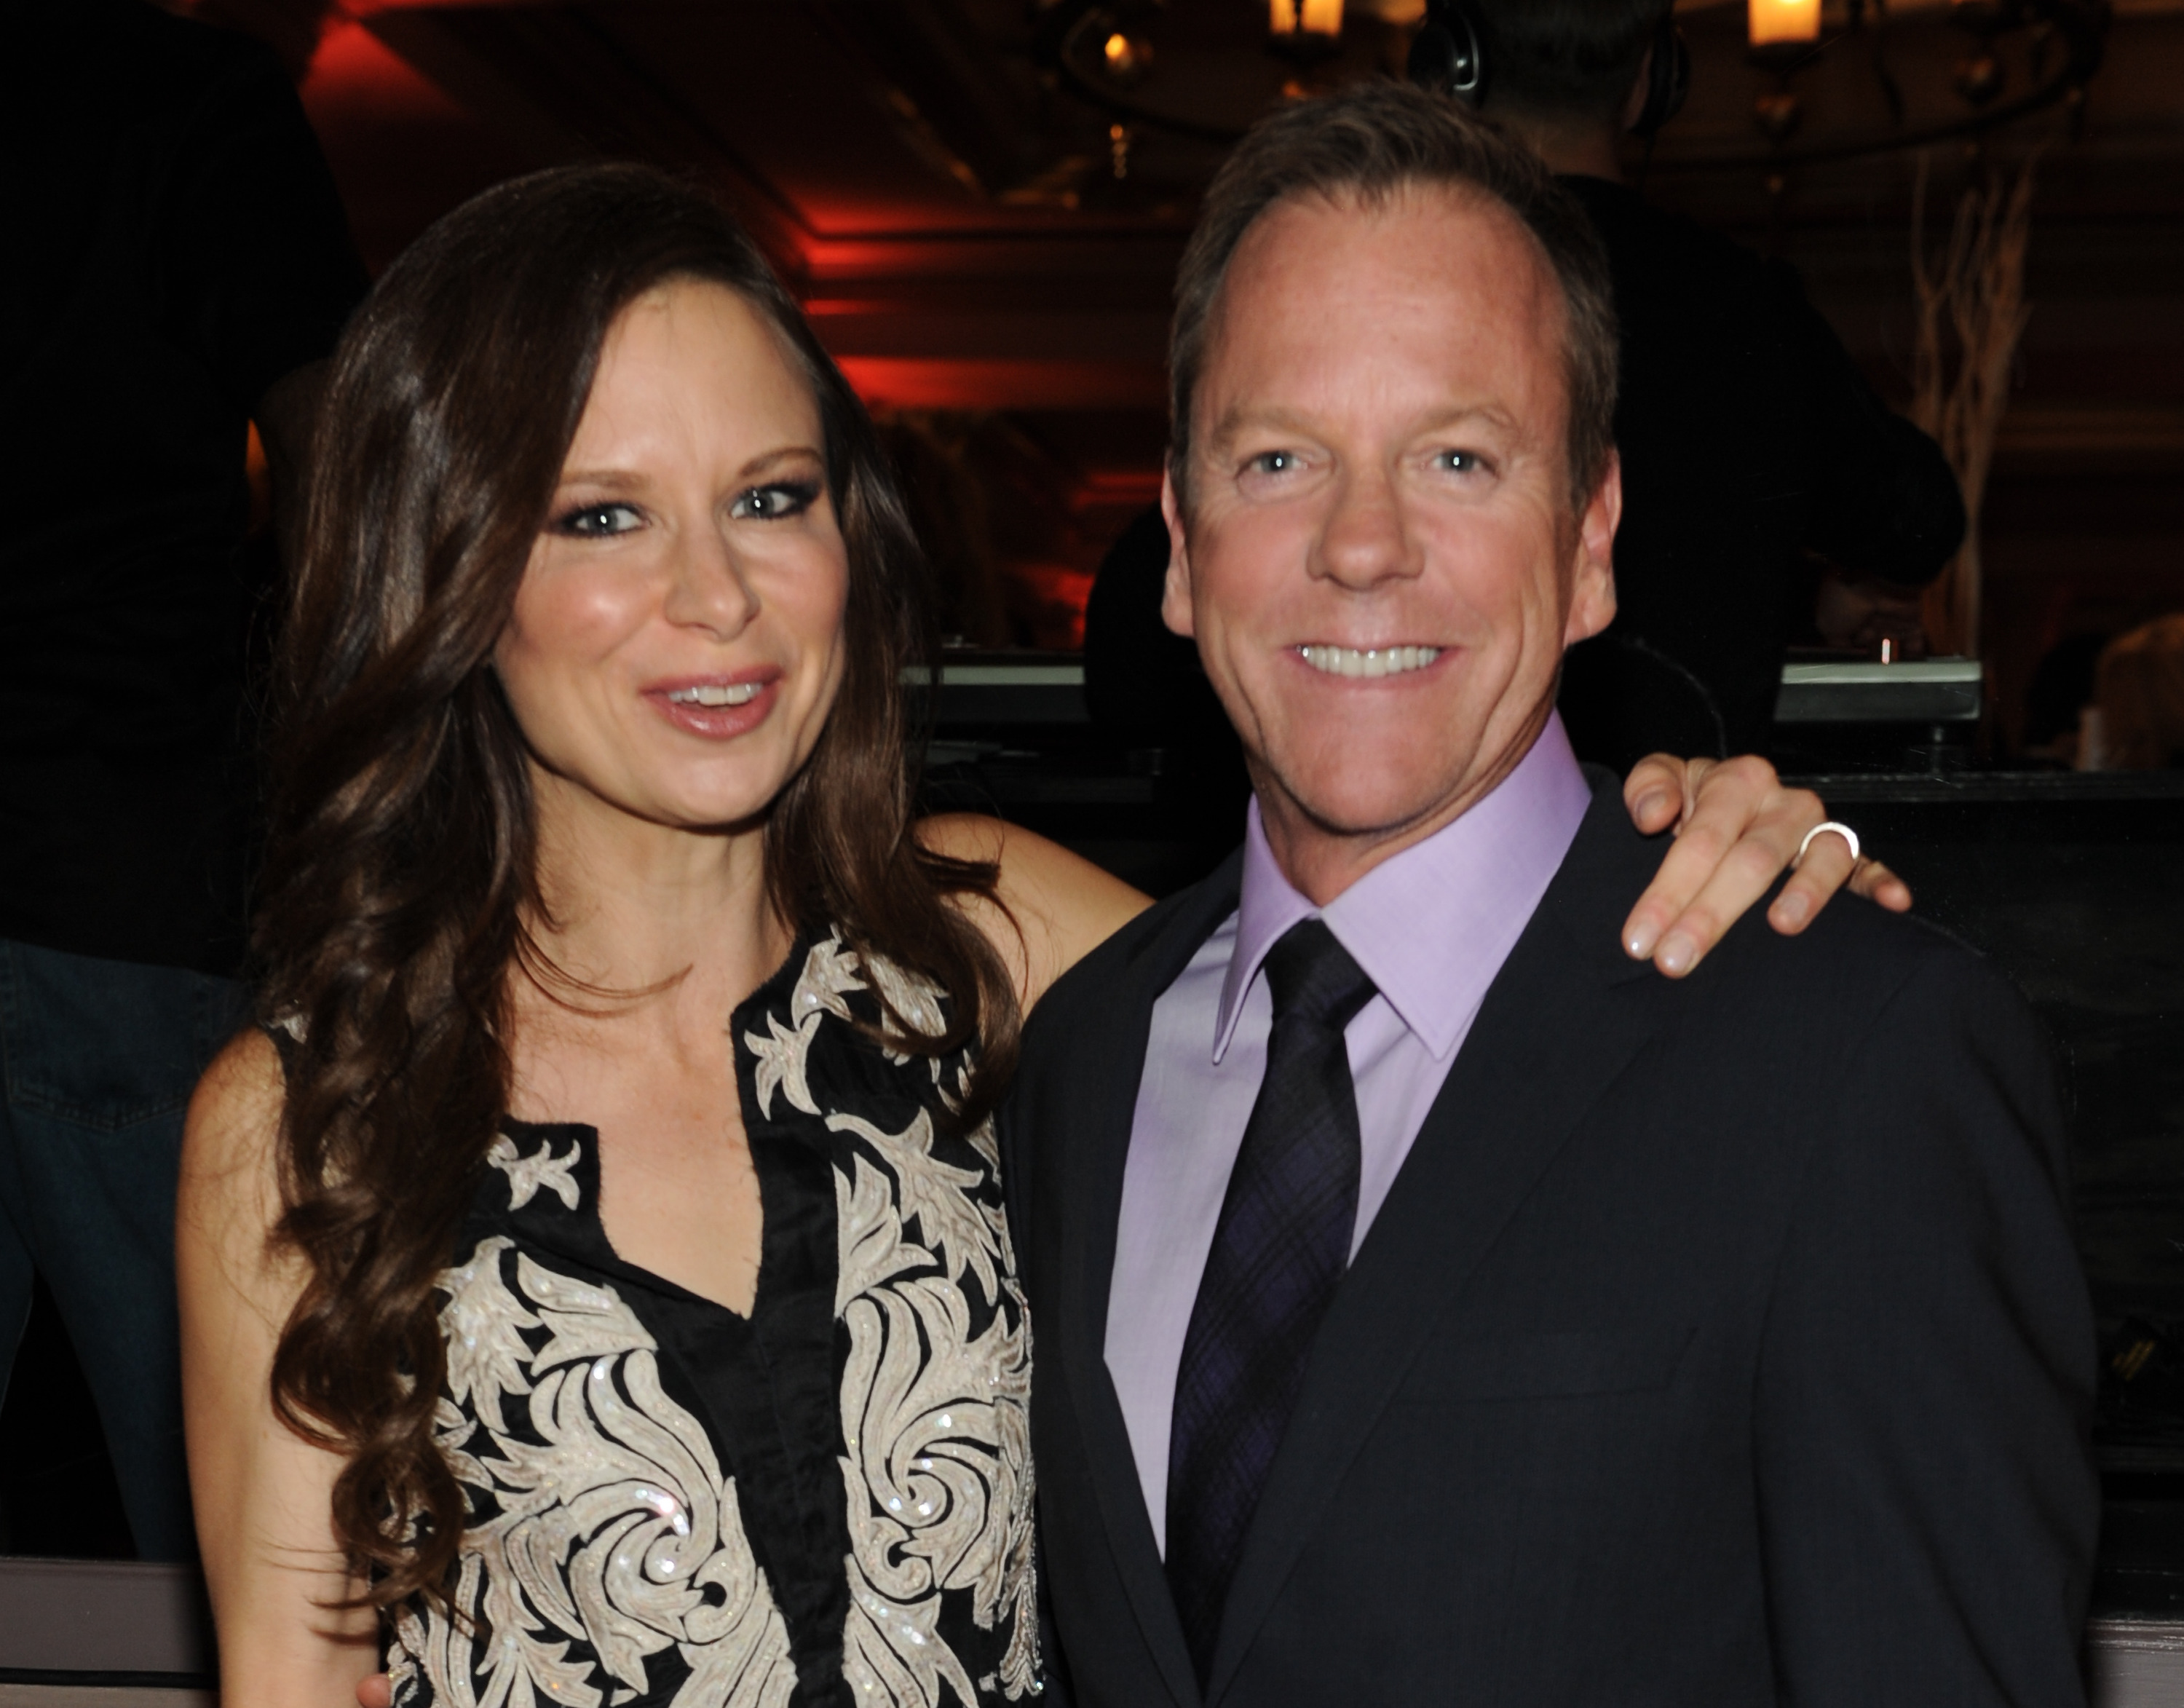 With Mary Lynn Rajskub at 2014  Kiefer Sutherland Dating 2014